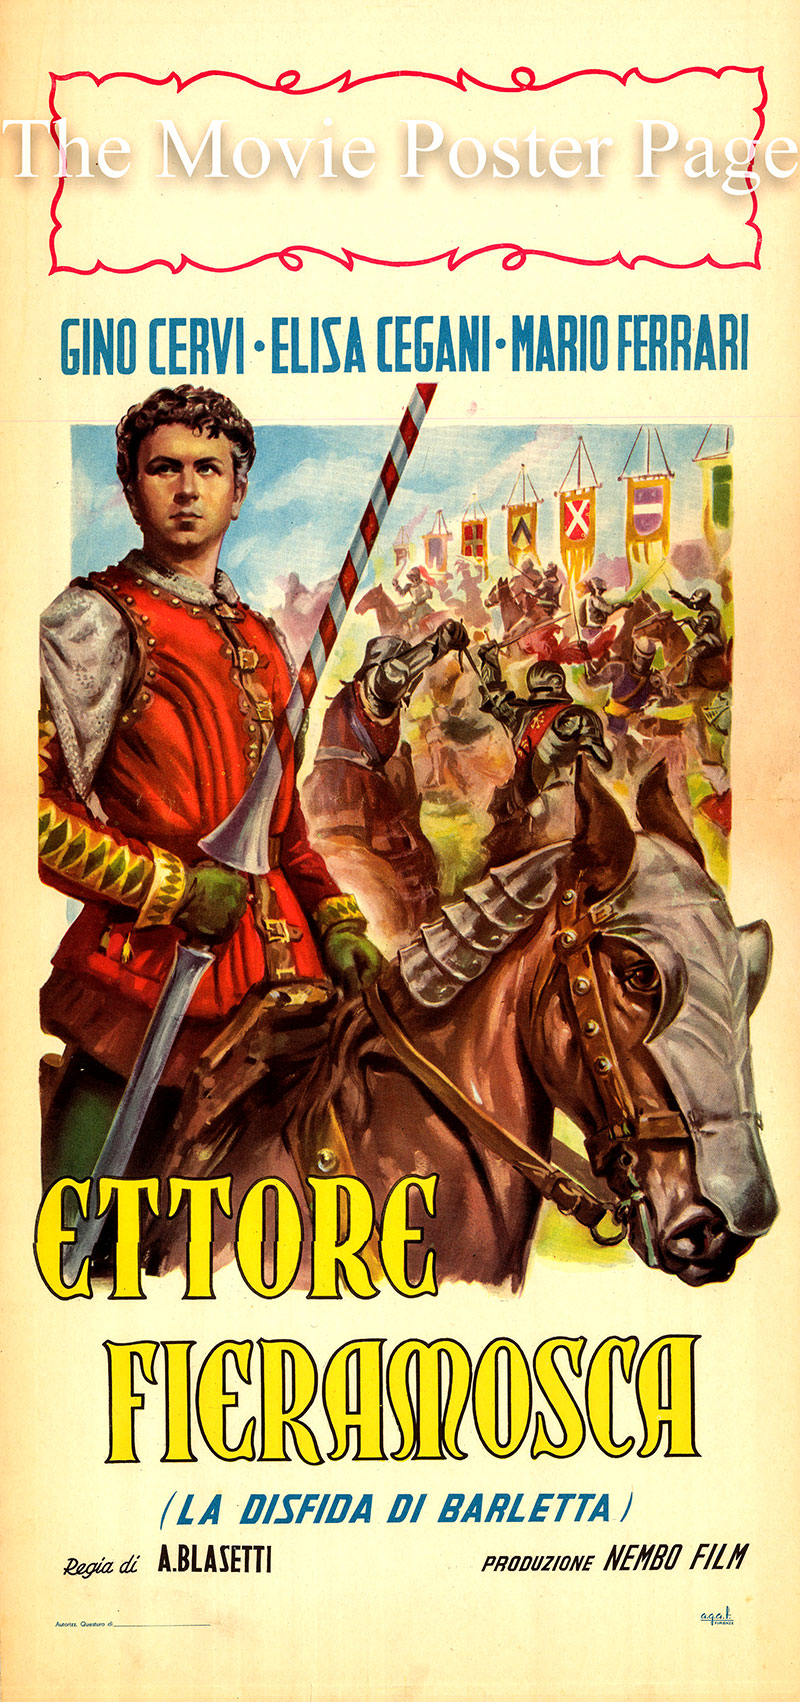 Pictured is an Italian locandina poster for a 1950 rerelease of the 1938 Allessandro Blasetti film Ettore Fieramosca starring Gino Cervi as Ettore Fieramosca.